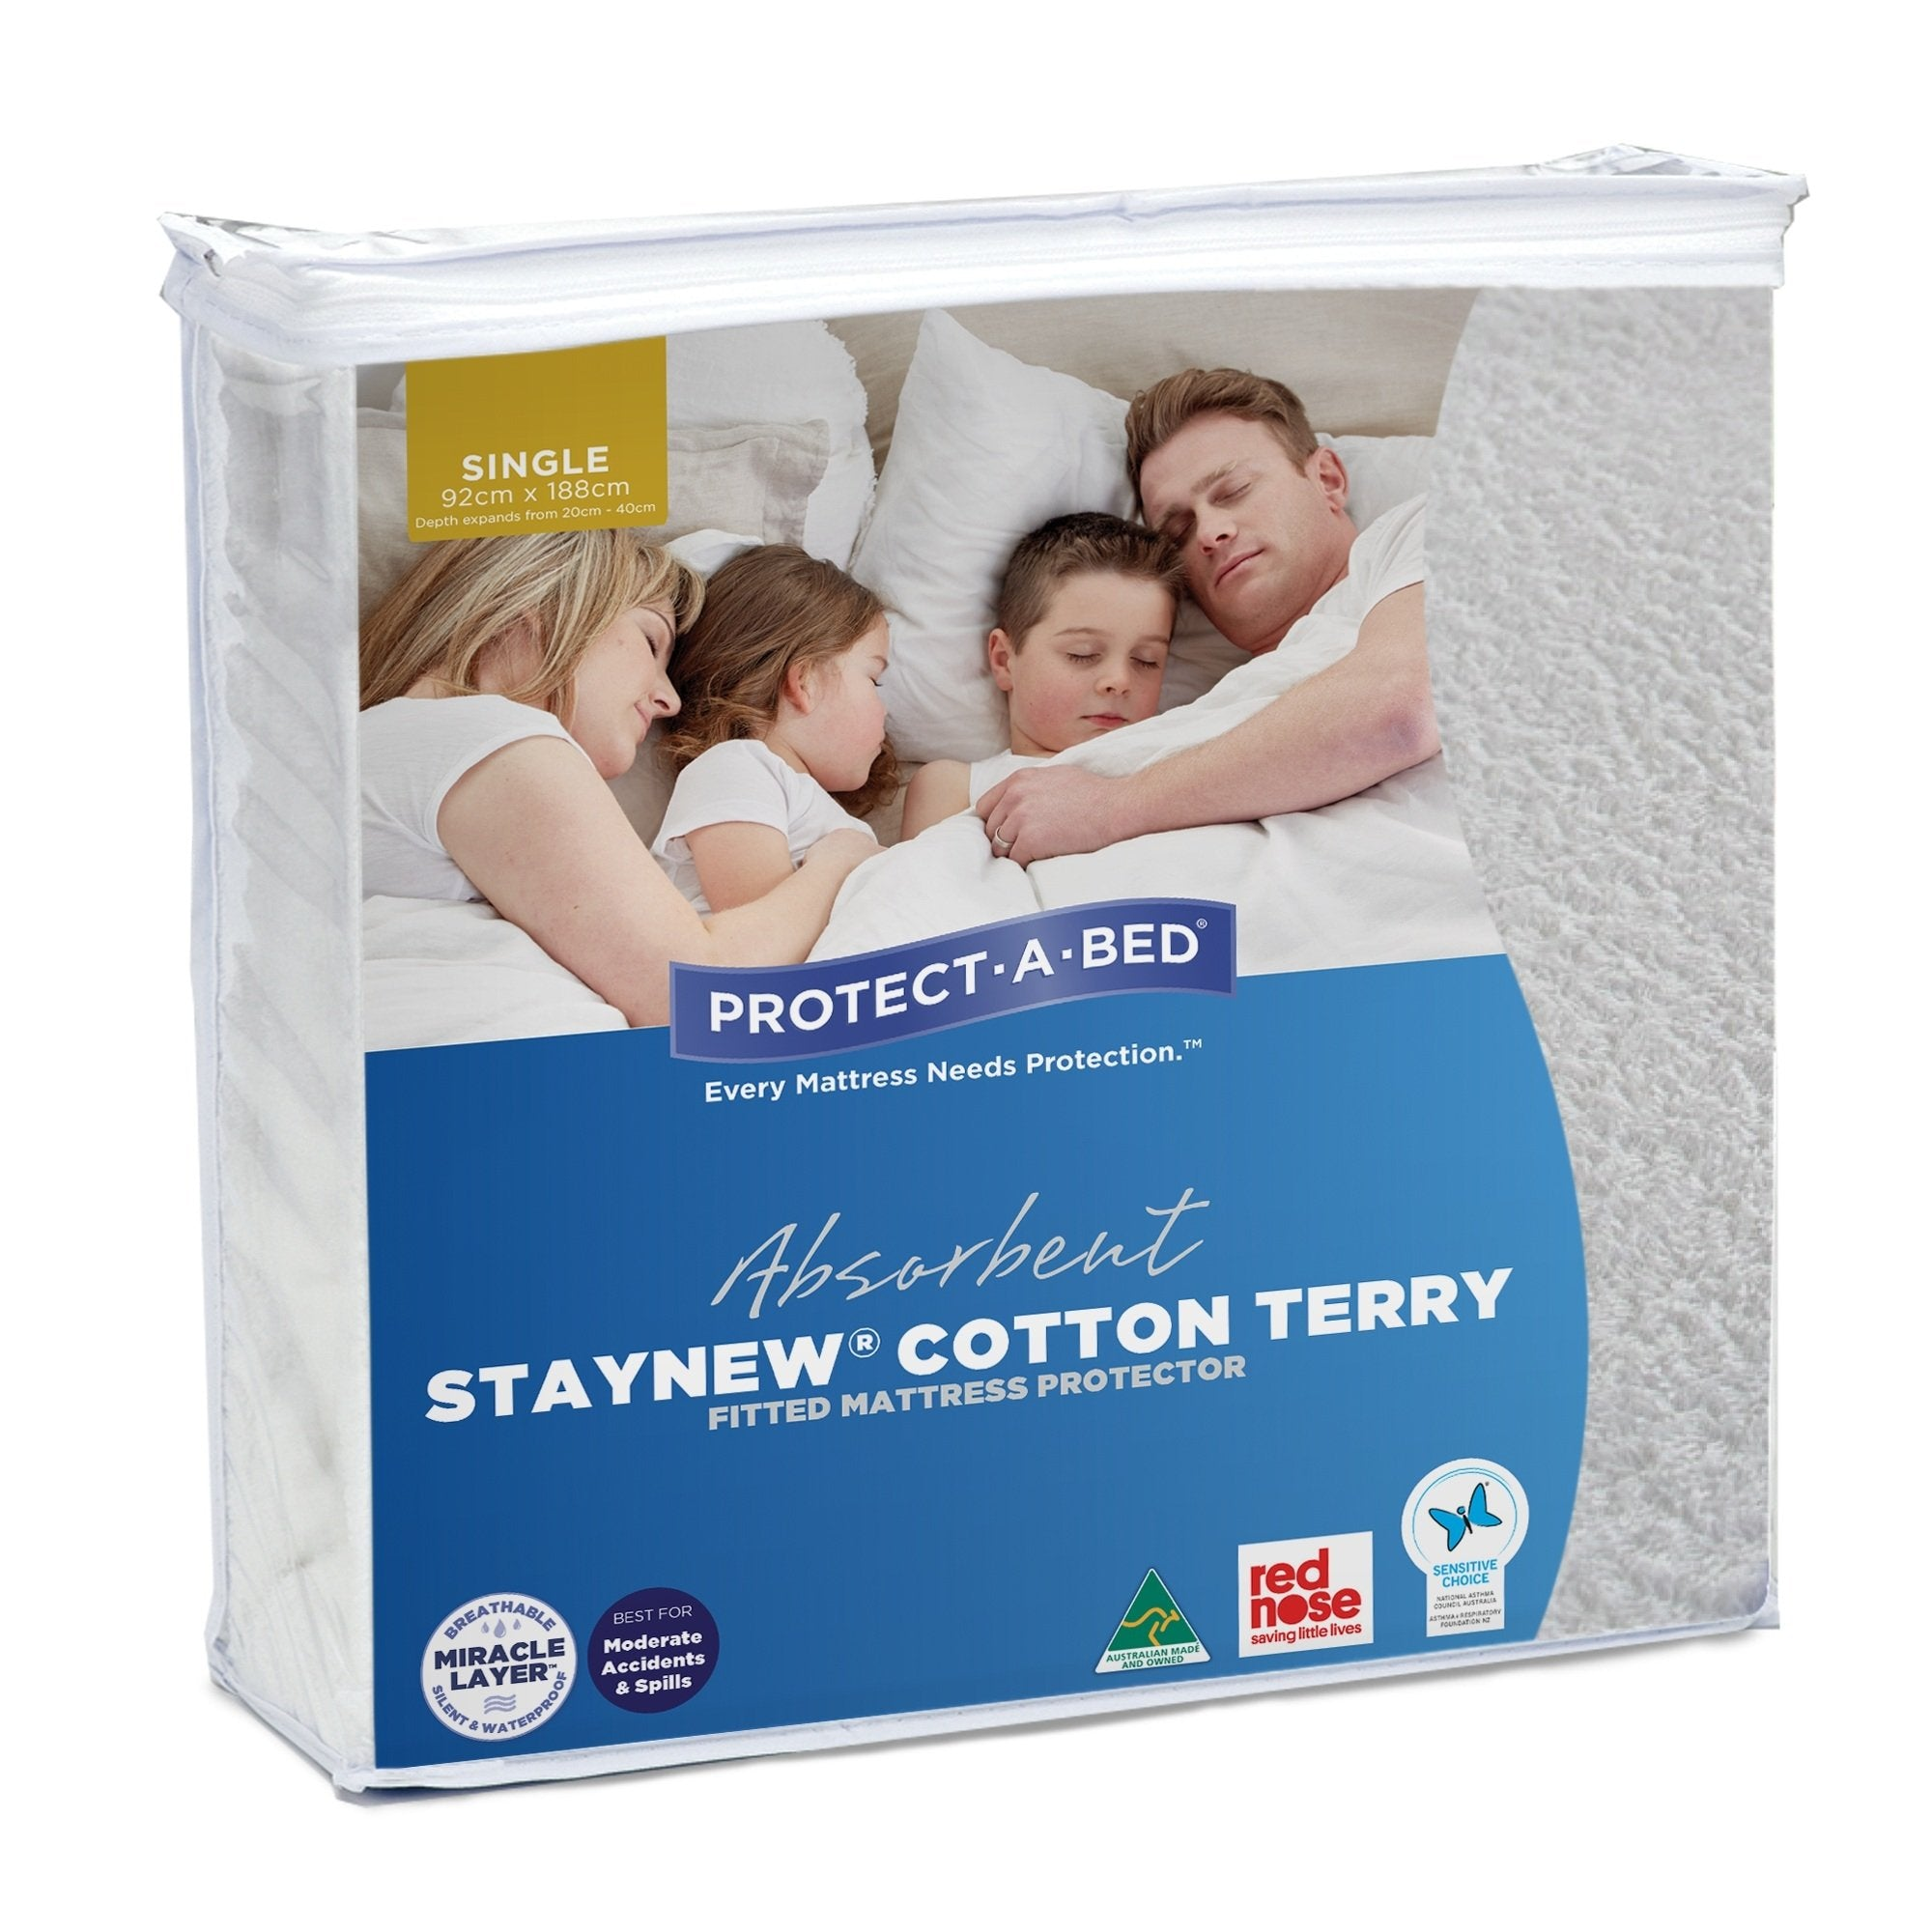 Protect-A-Bed Staynew Mattress Protector